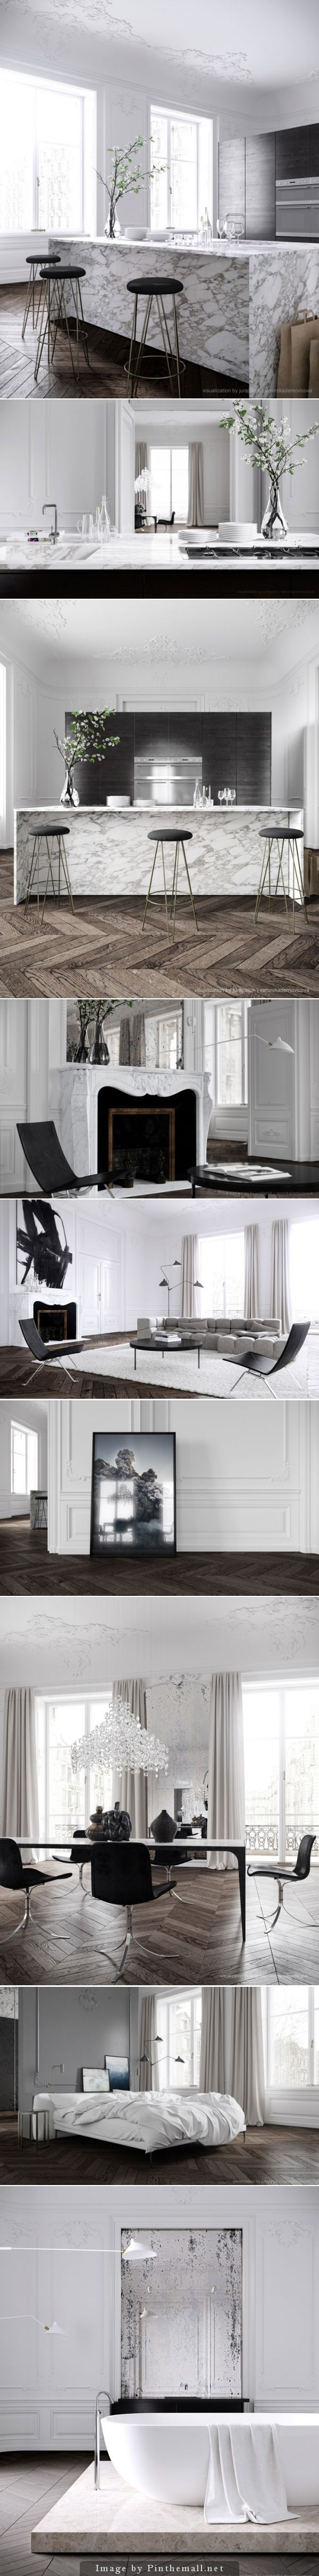 Parisian Apartment by Jessica Vedel